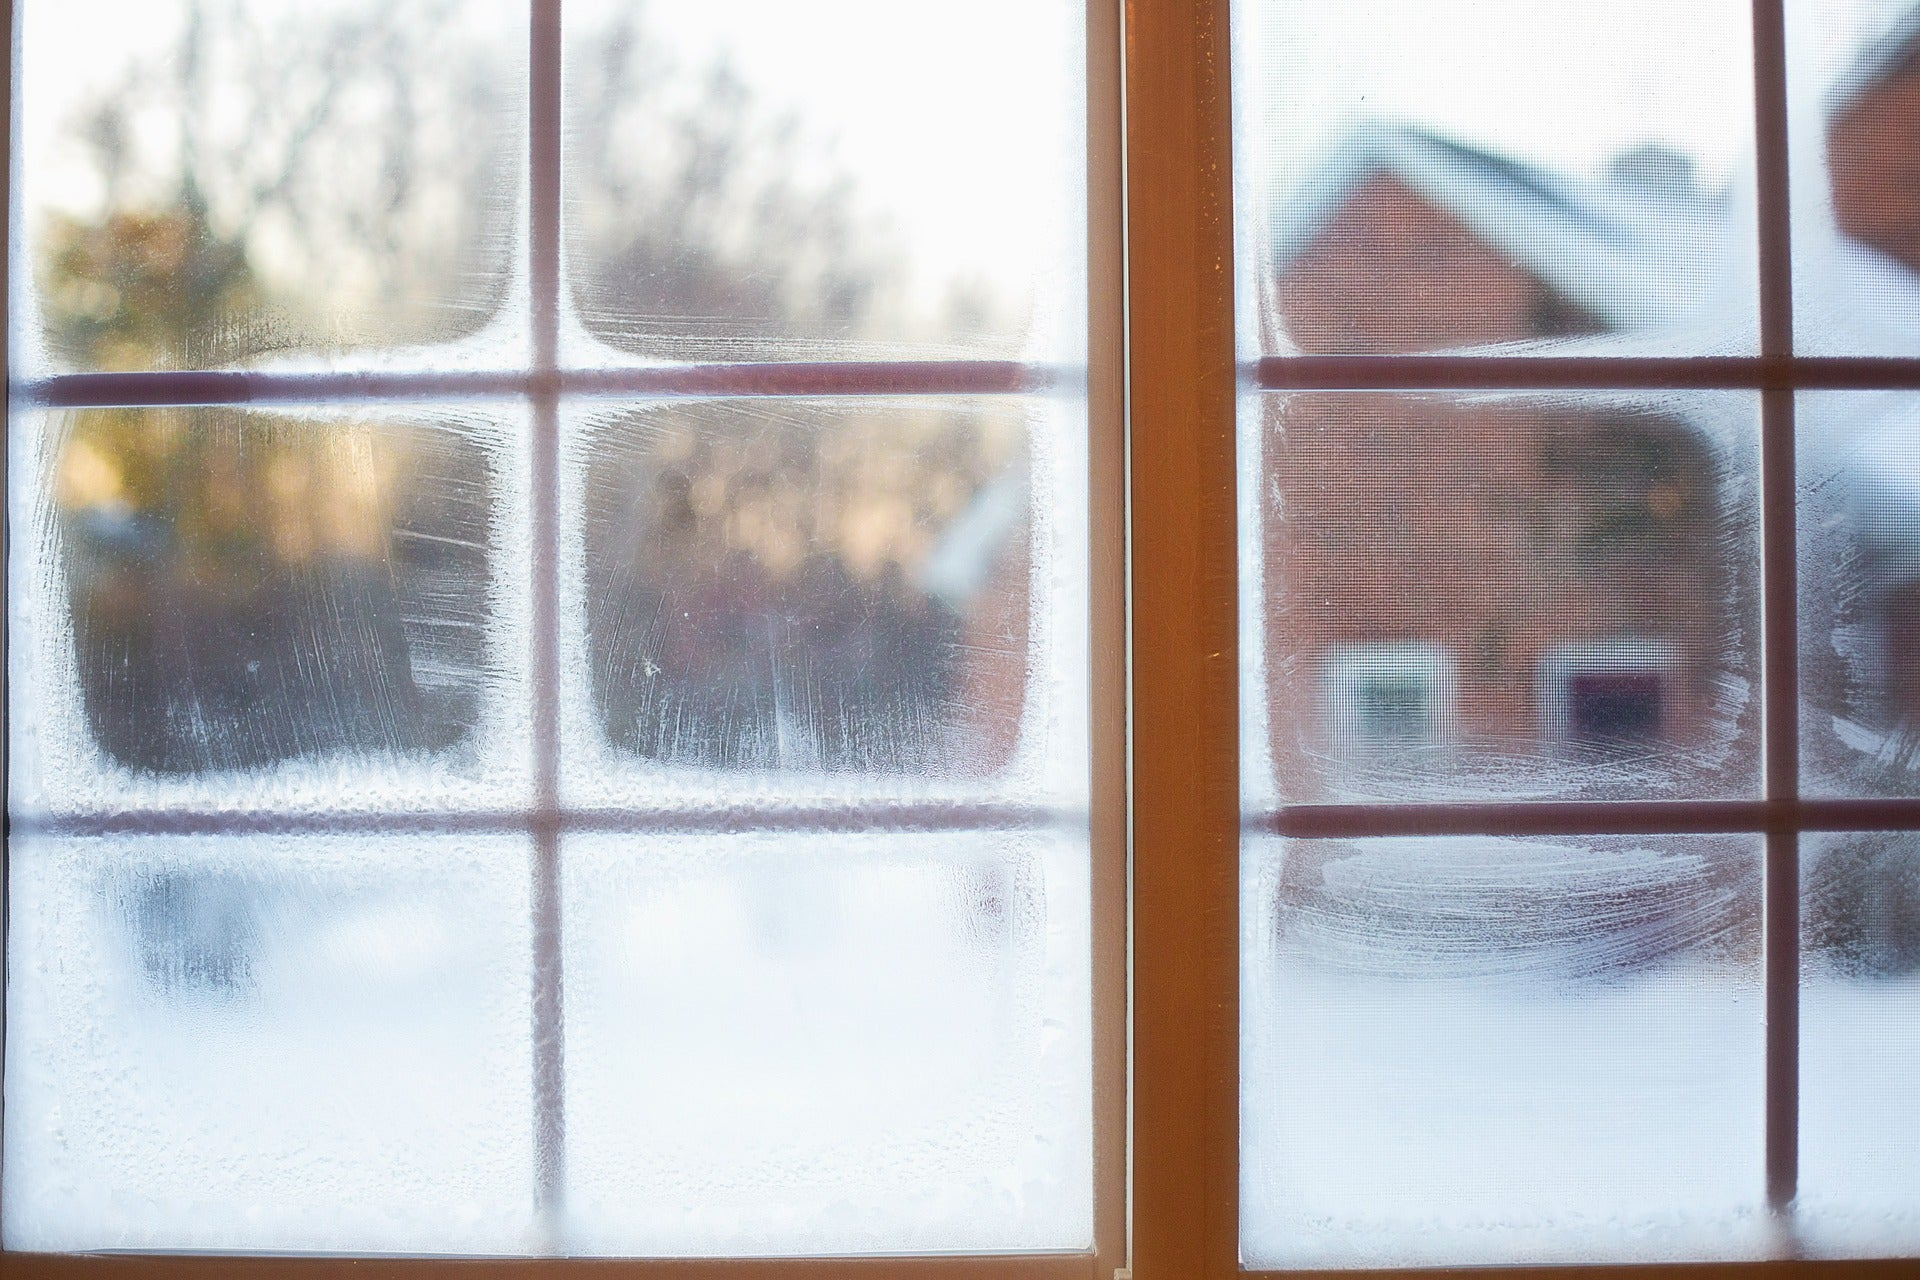 Solutions to Common Glass Window Issues During the Winter